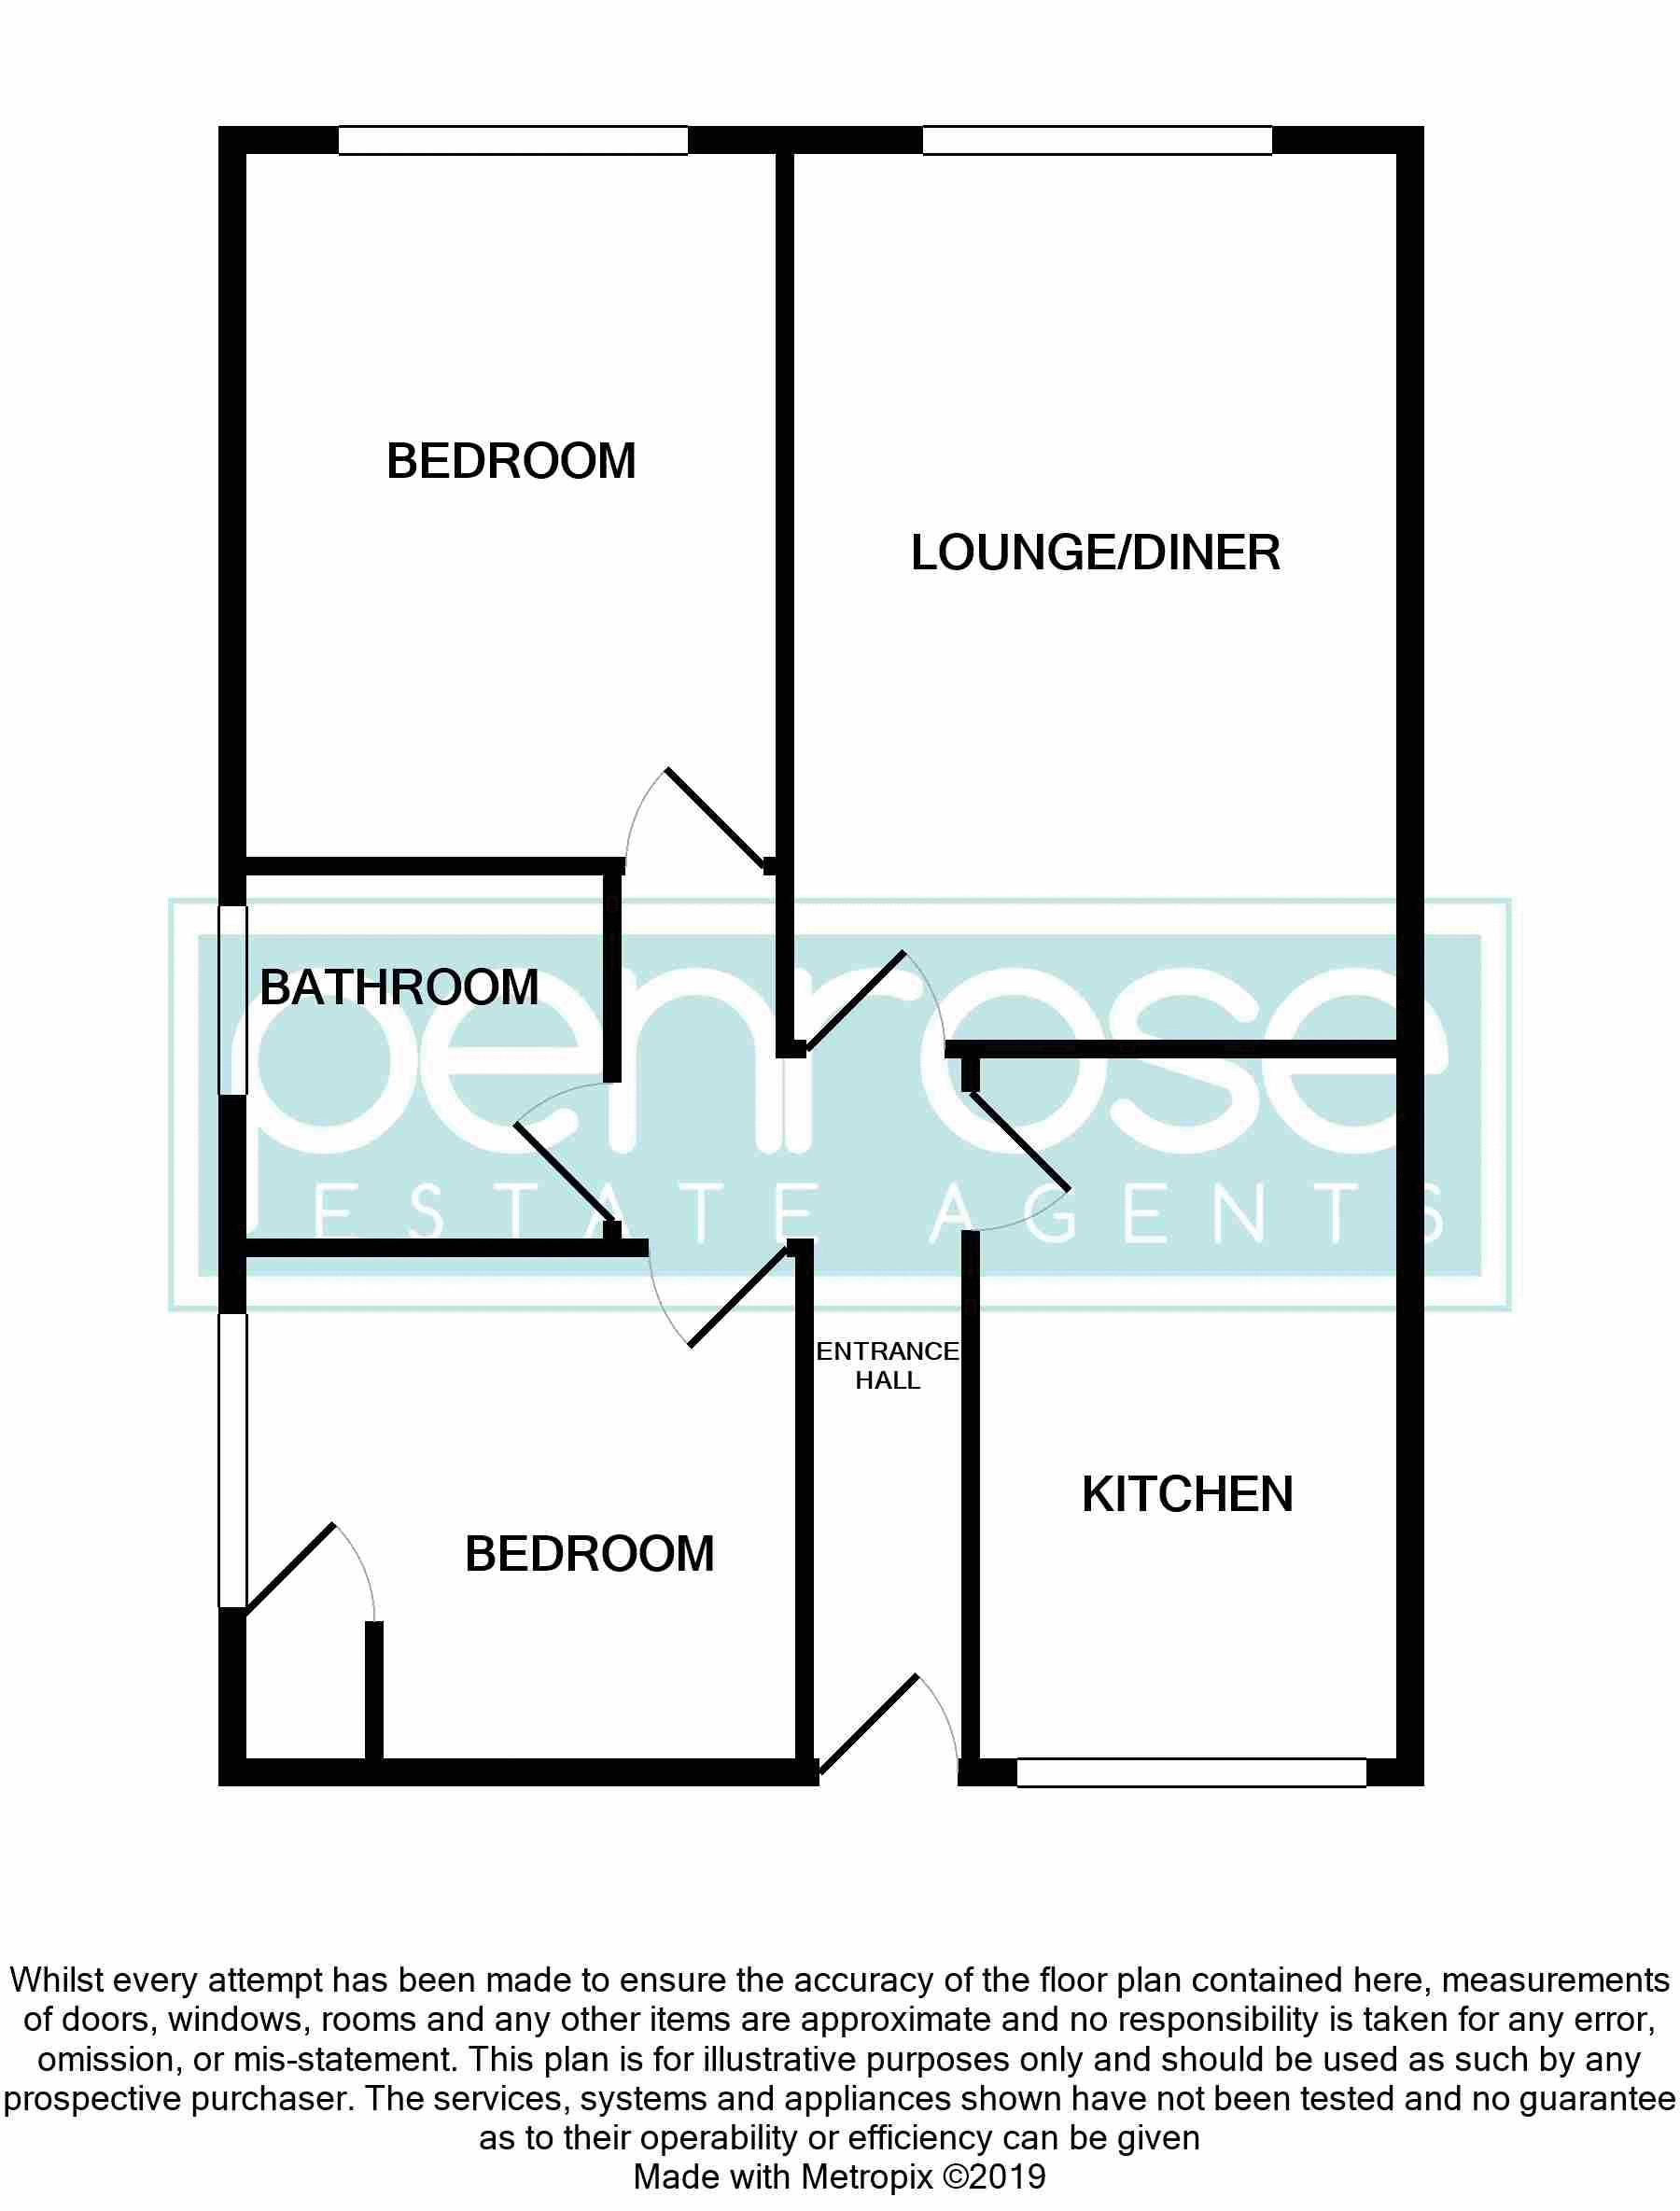 2 bedroom Flat to buy in Moulton Rise, Luton Floorplan